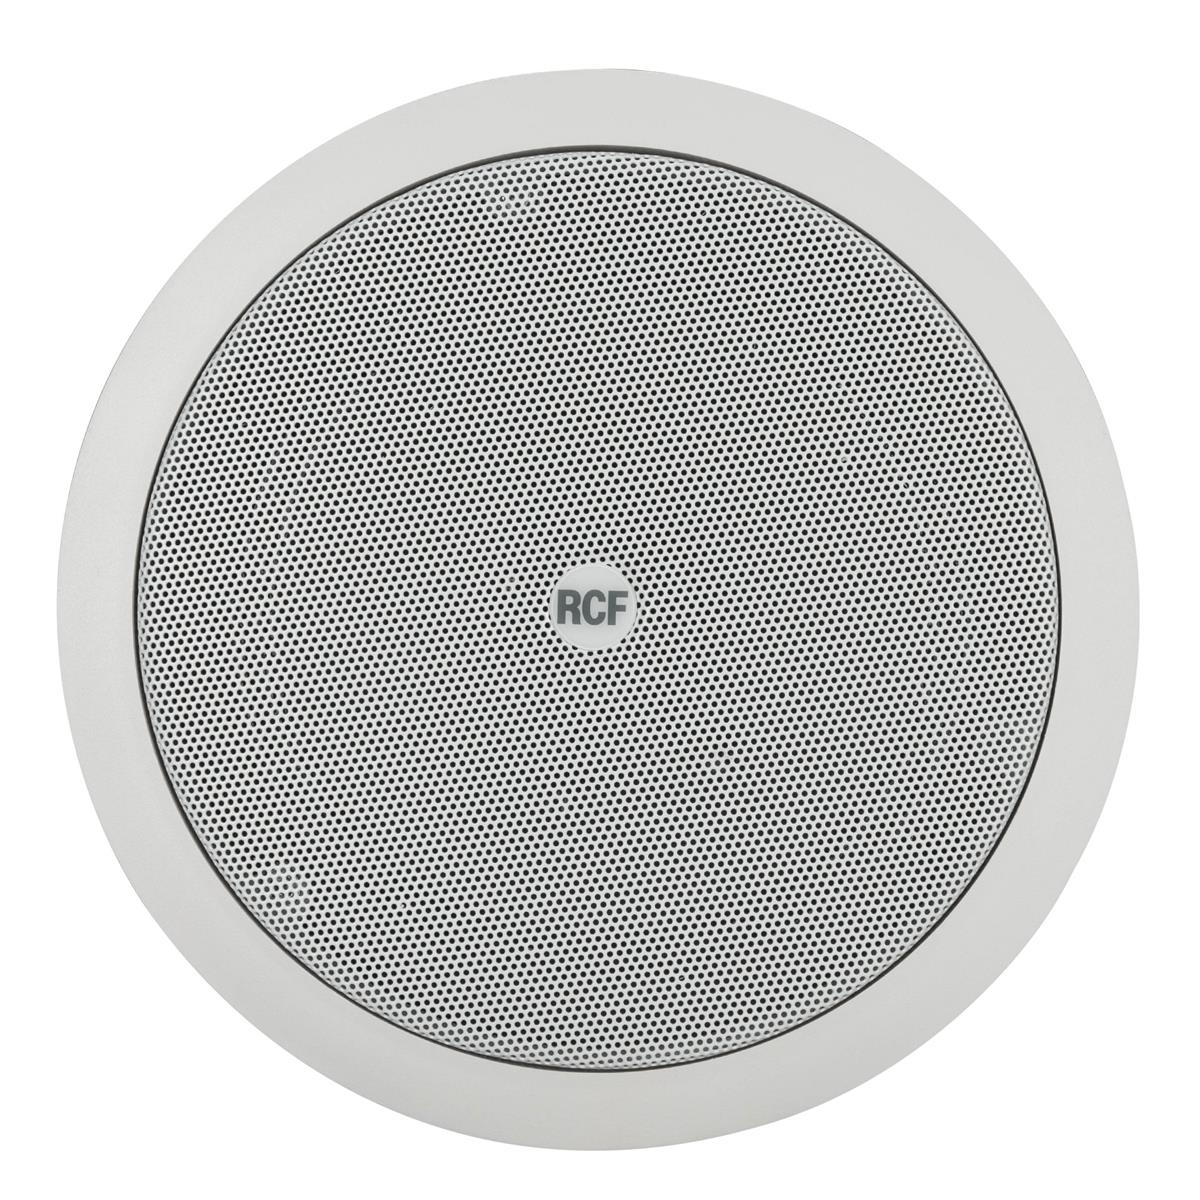 RCF PL 60 6in twin-cone flush mounting ceiling speaker, whit